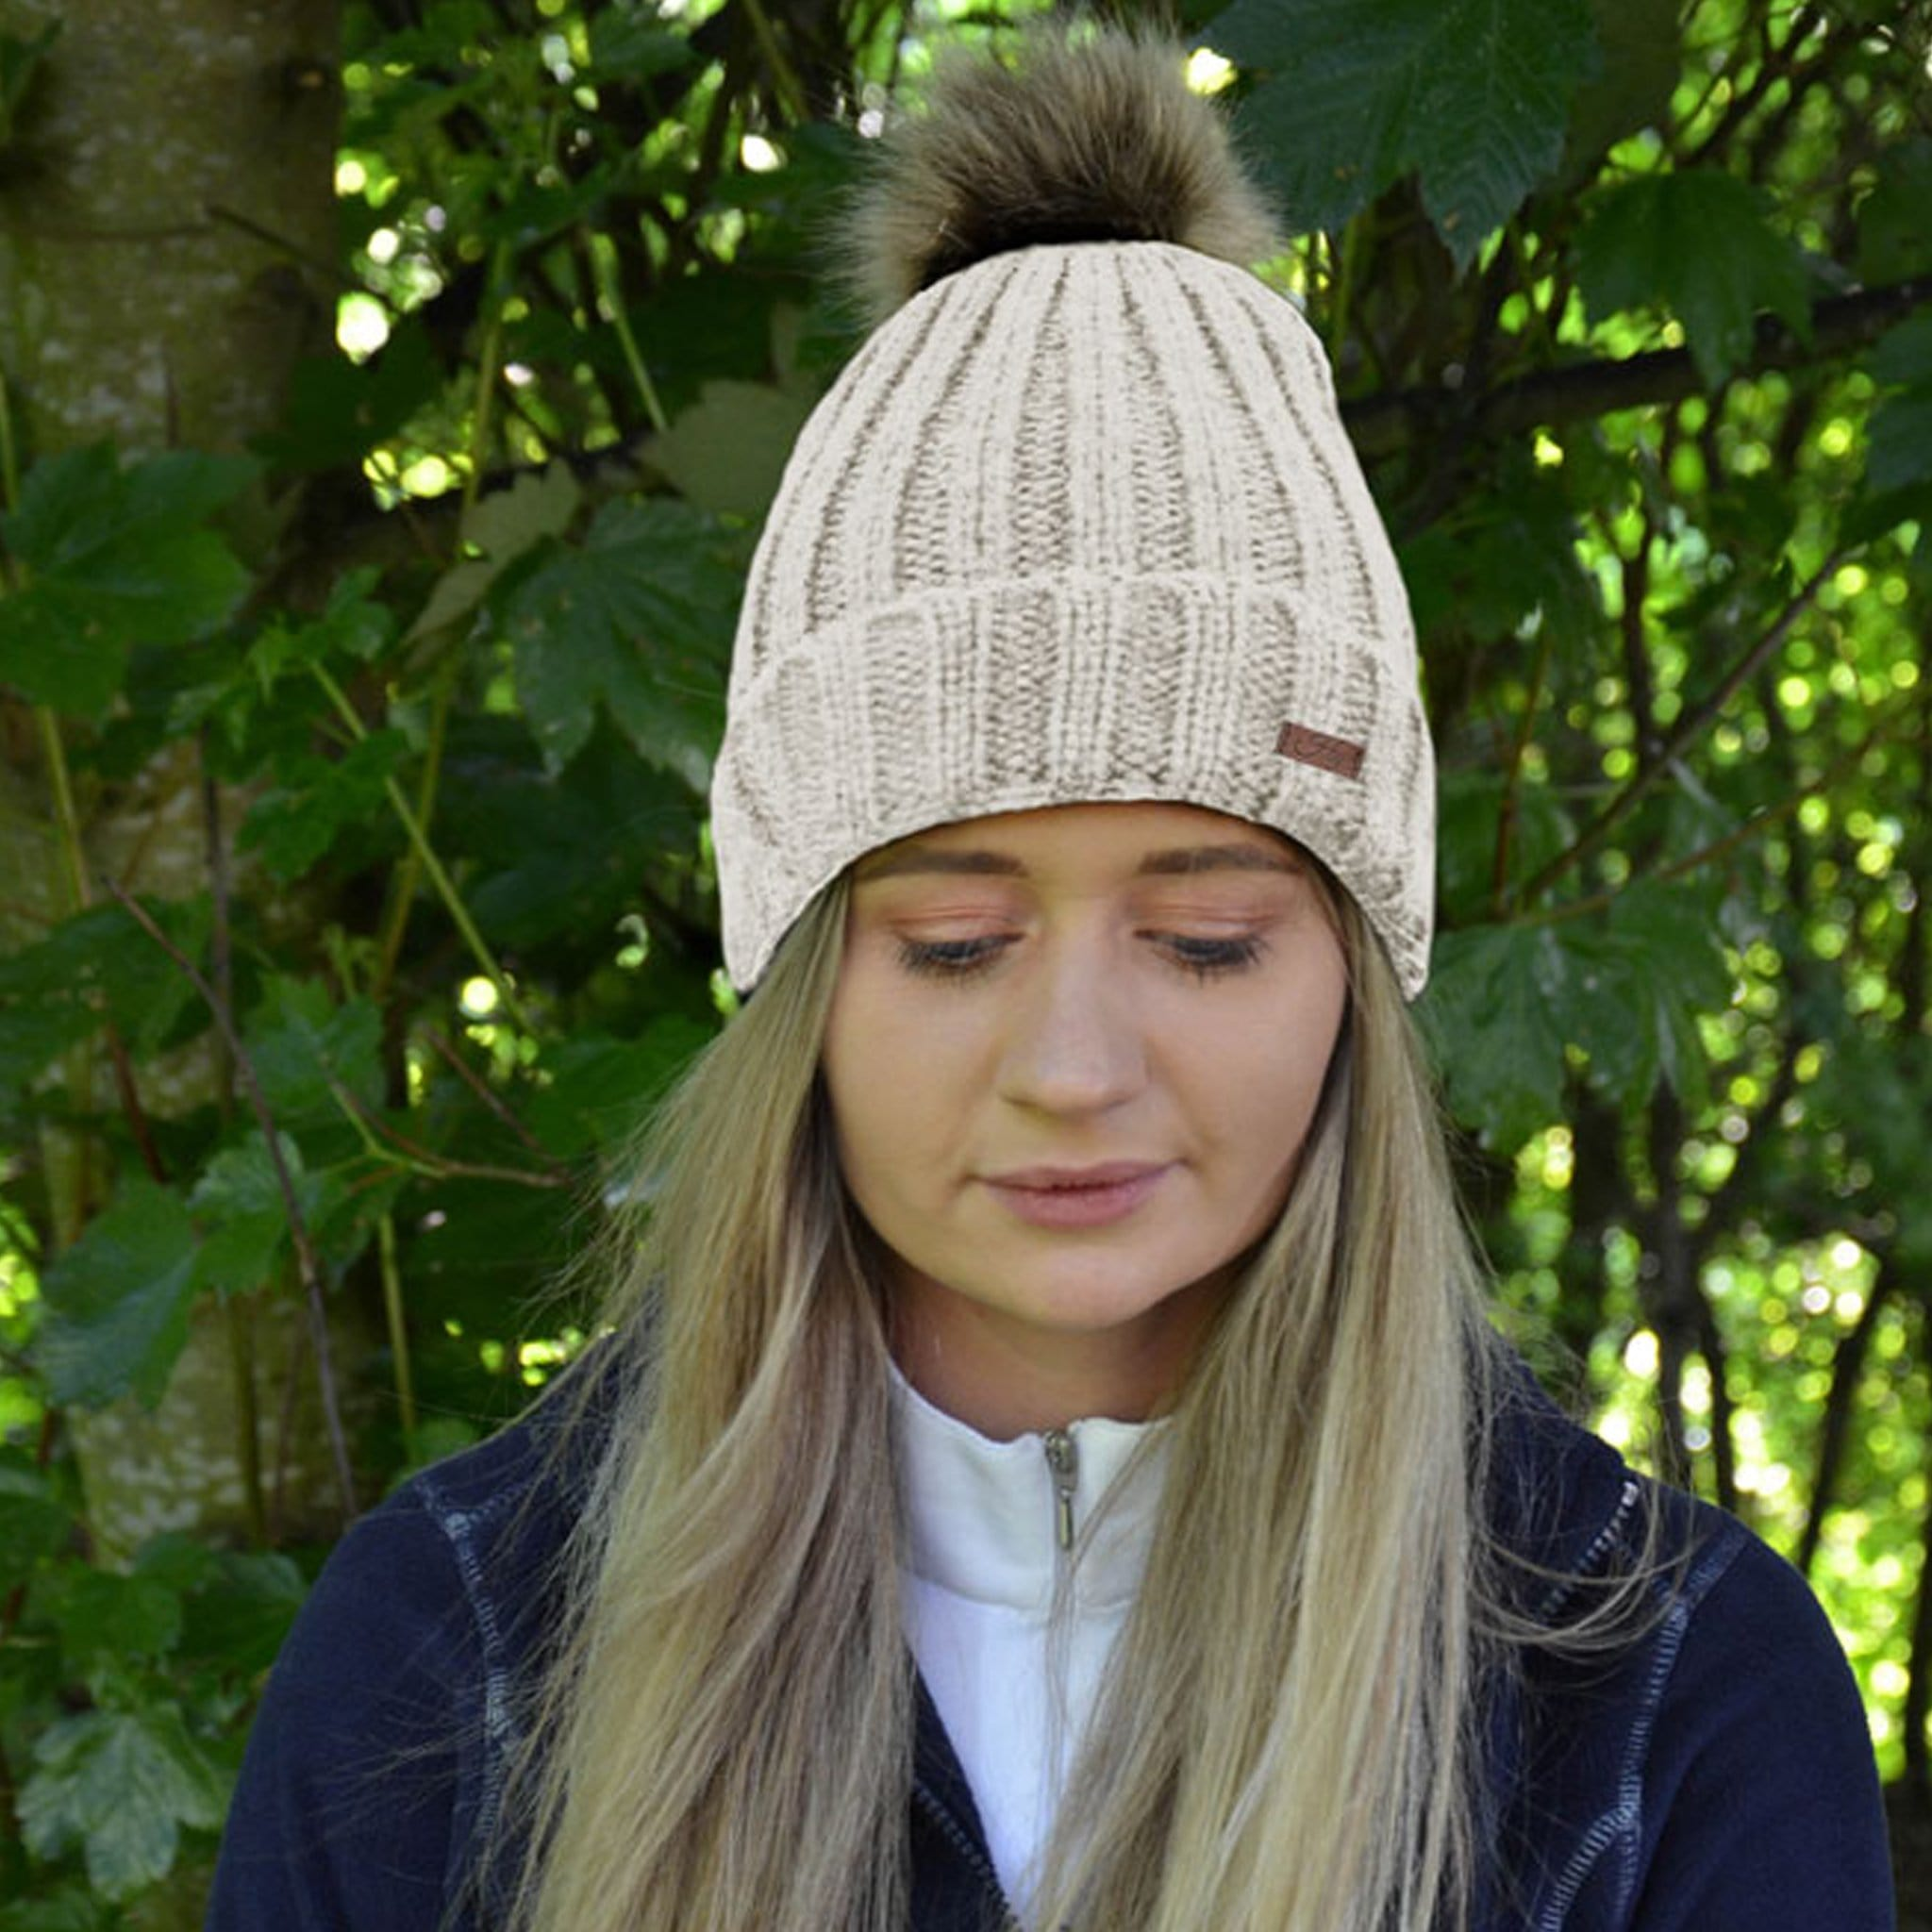 HyFASHION Turin Bobble Hat in White Lifestyle 20293